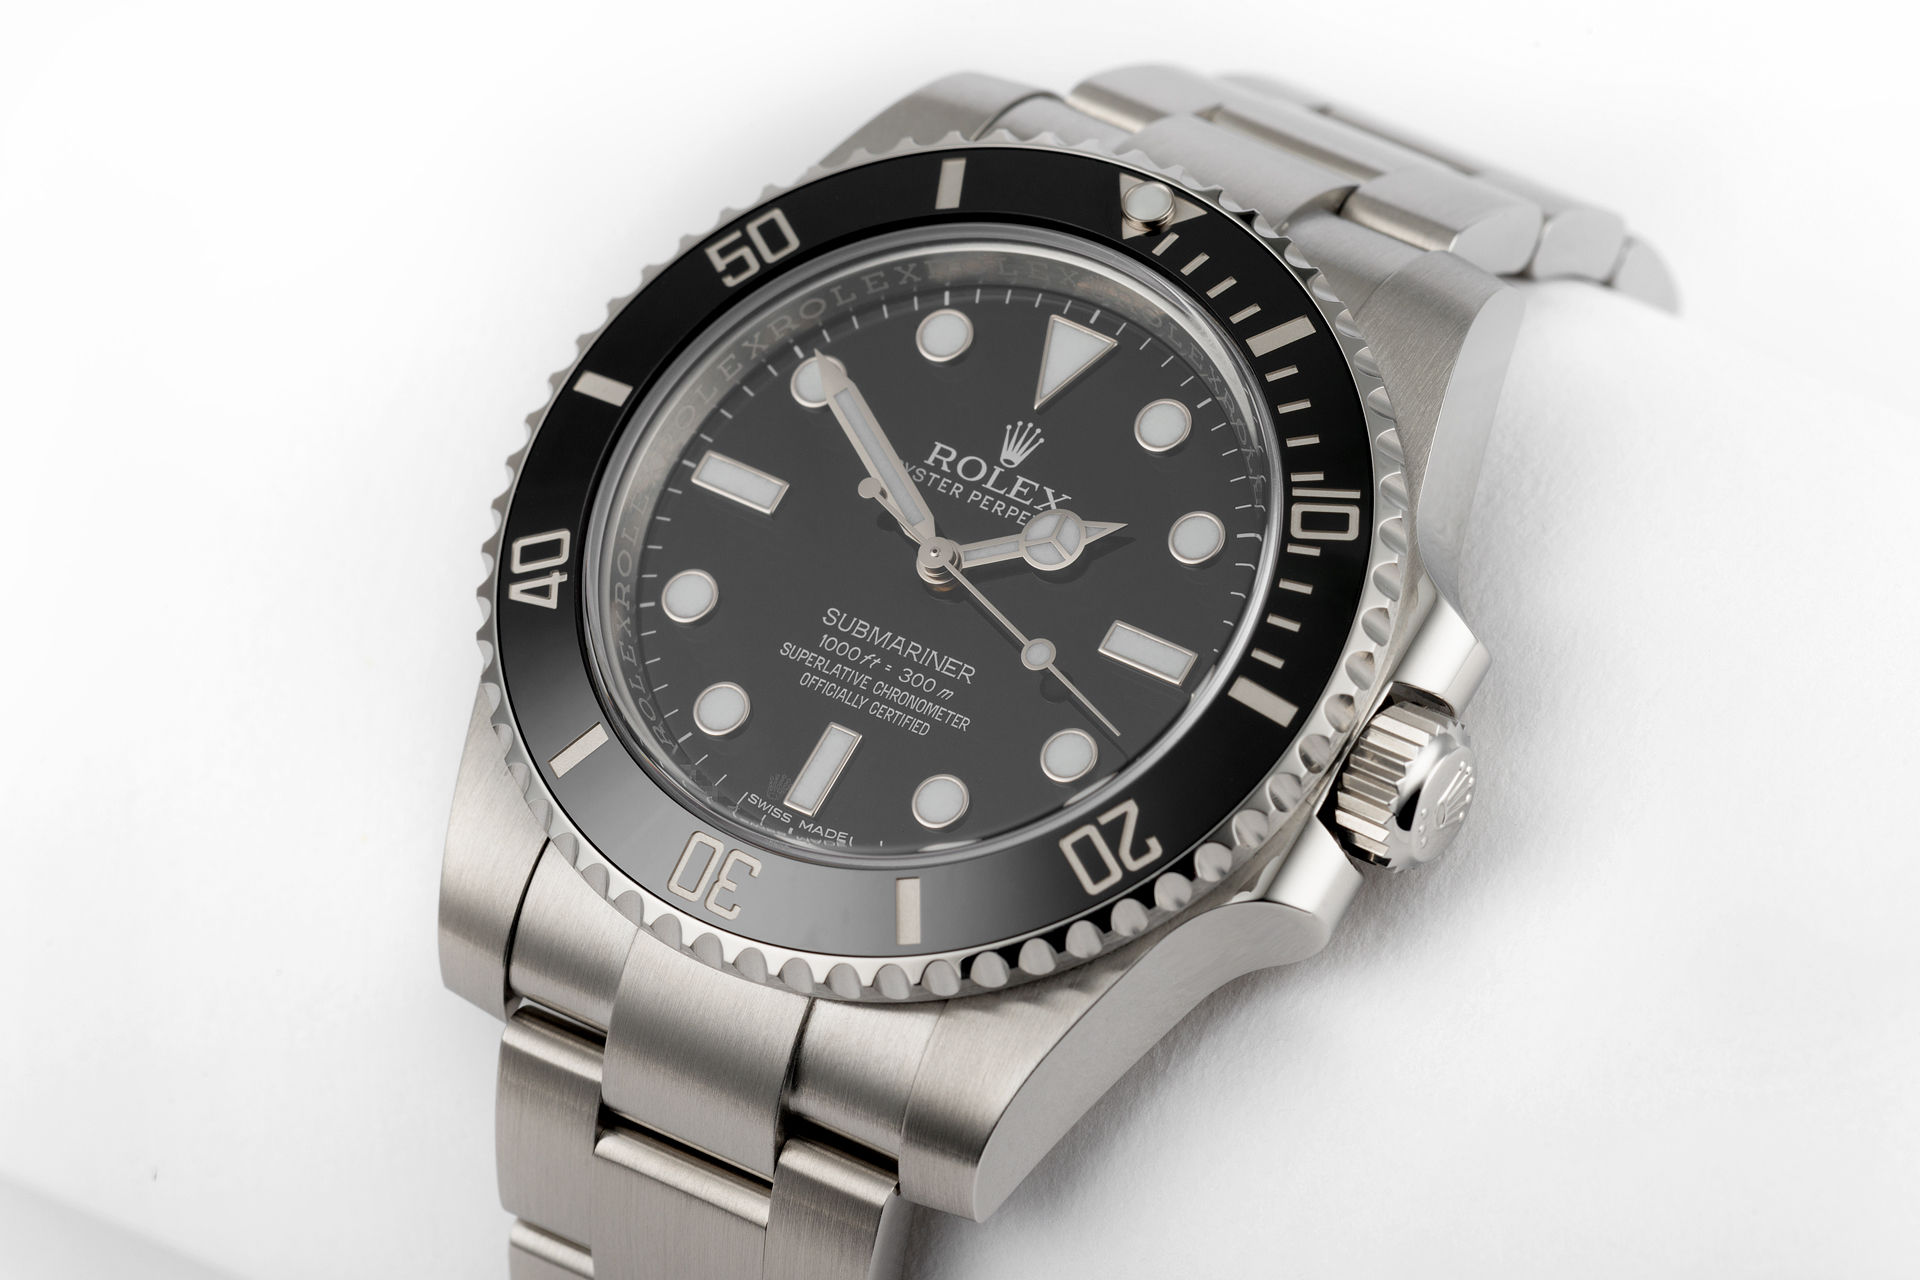 rolex warranty to 2021 ref 114060 rolex submariner watches the watch club. Black Bedroom Furniture Sets. Home Design Ideas